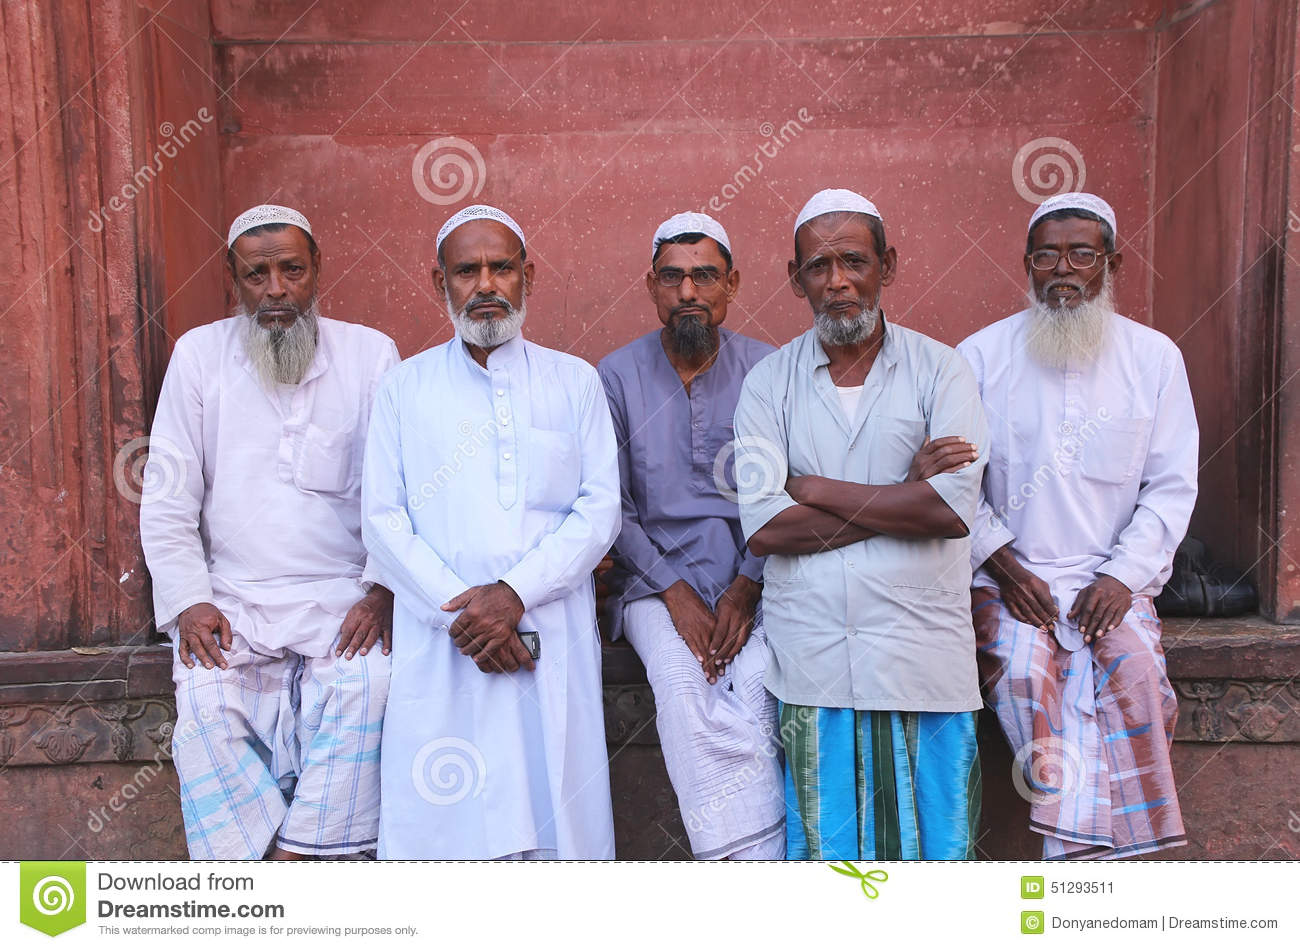 muslim single men in guy Seekershub answers  traditionally, islamic law makes allowances for interfaith marriages only in the case of a muslim man marrying a christian or jewish woman.